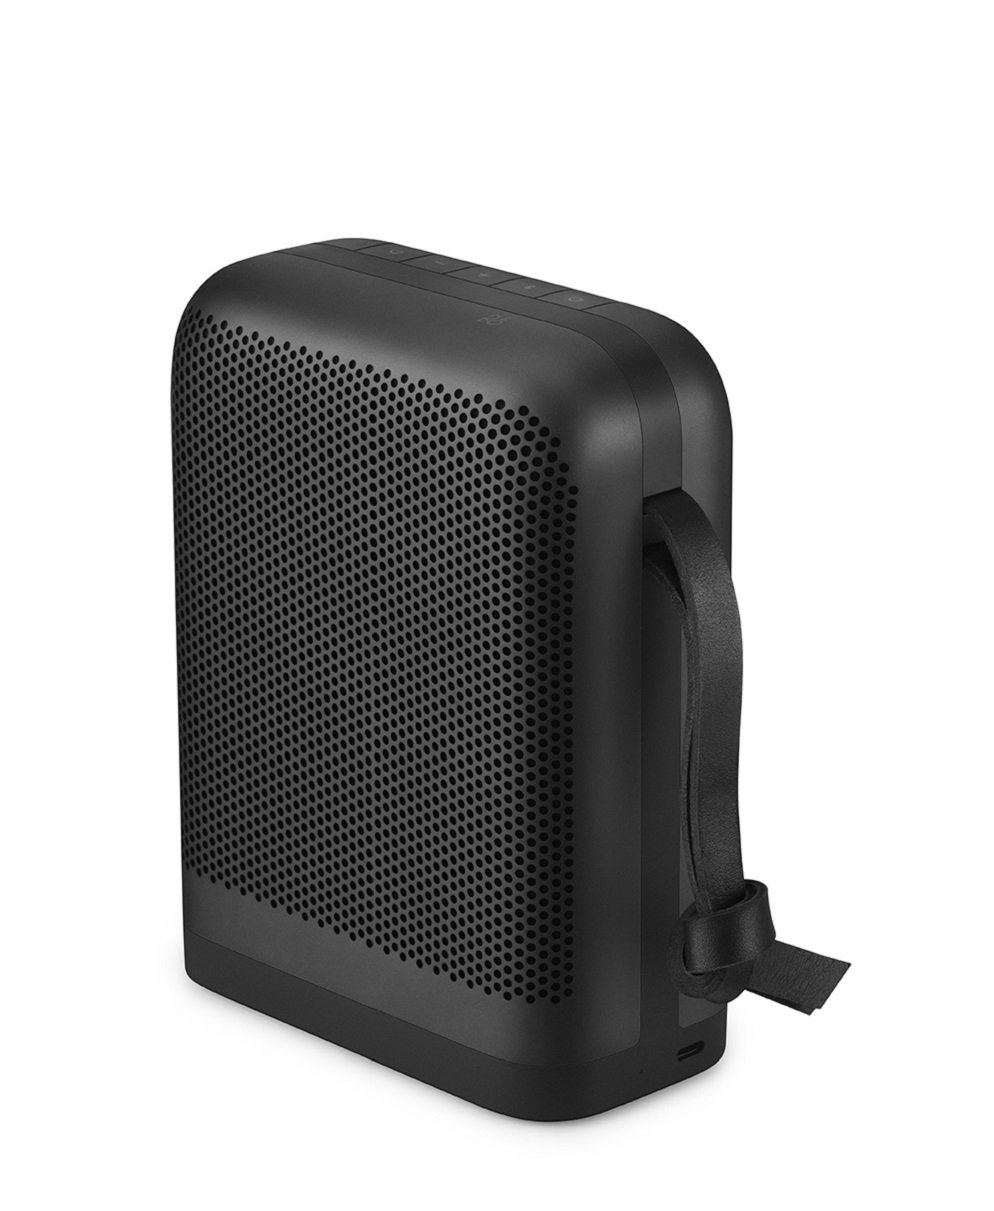 Parlante Bluetooth Bang & Olufsen Beoplay P6 Portable (DRVC)